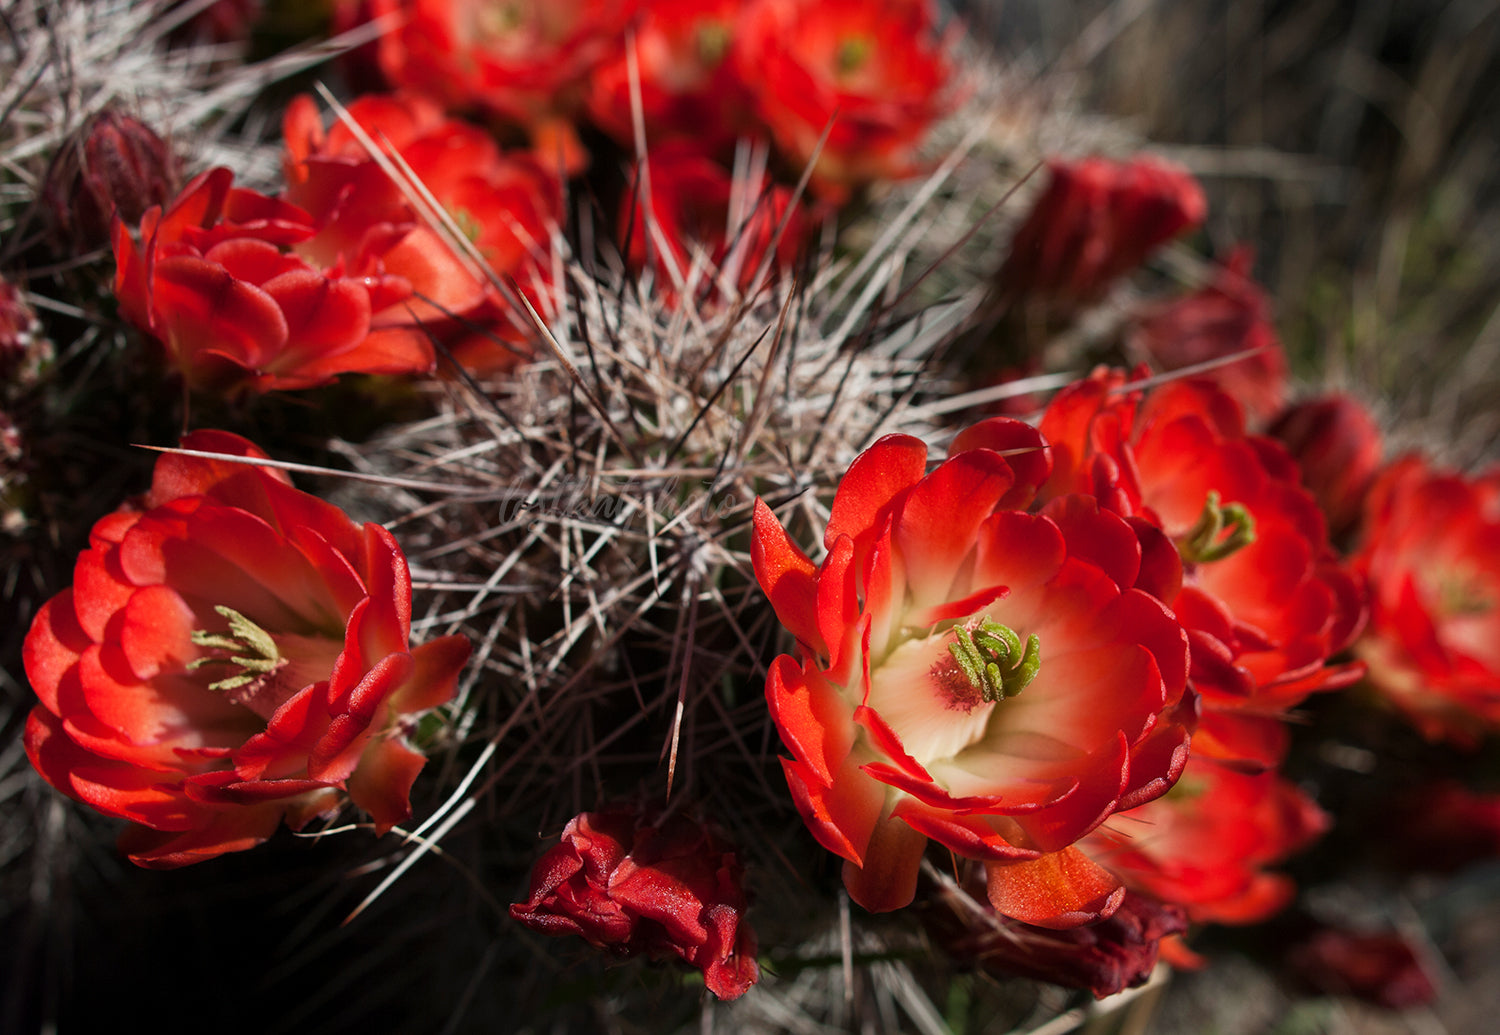 Fire Red Cactus Bloom